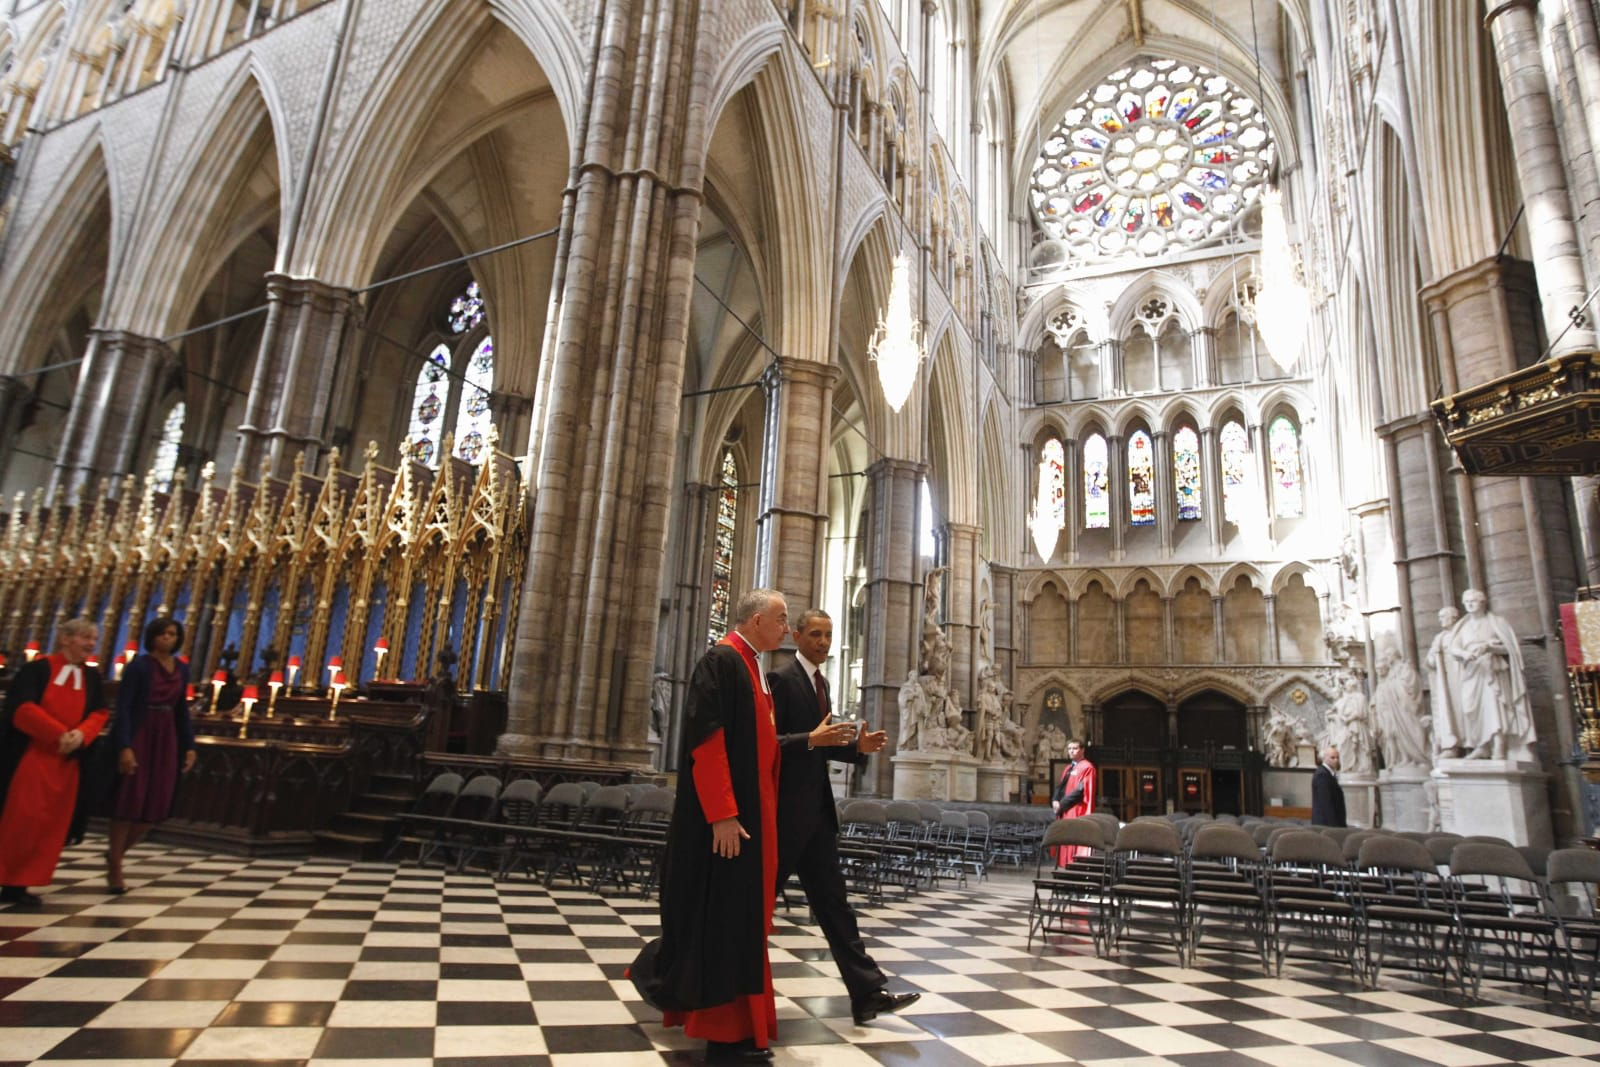 Tour Westminster Abbey with Google Street View